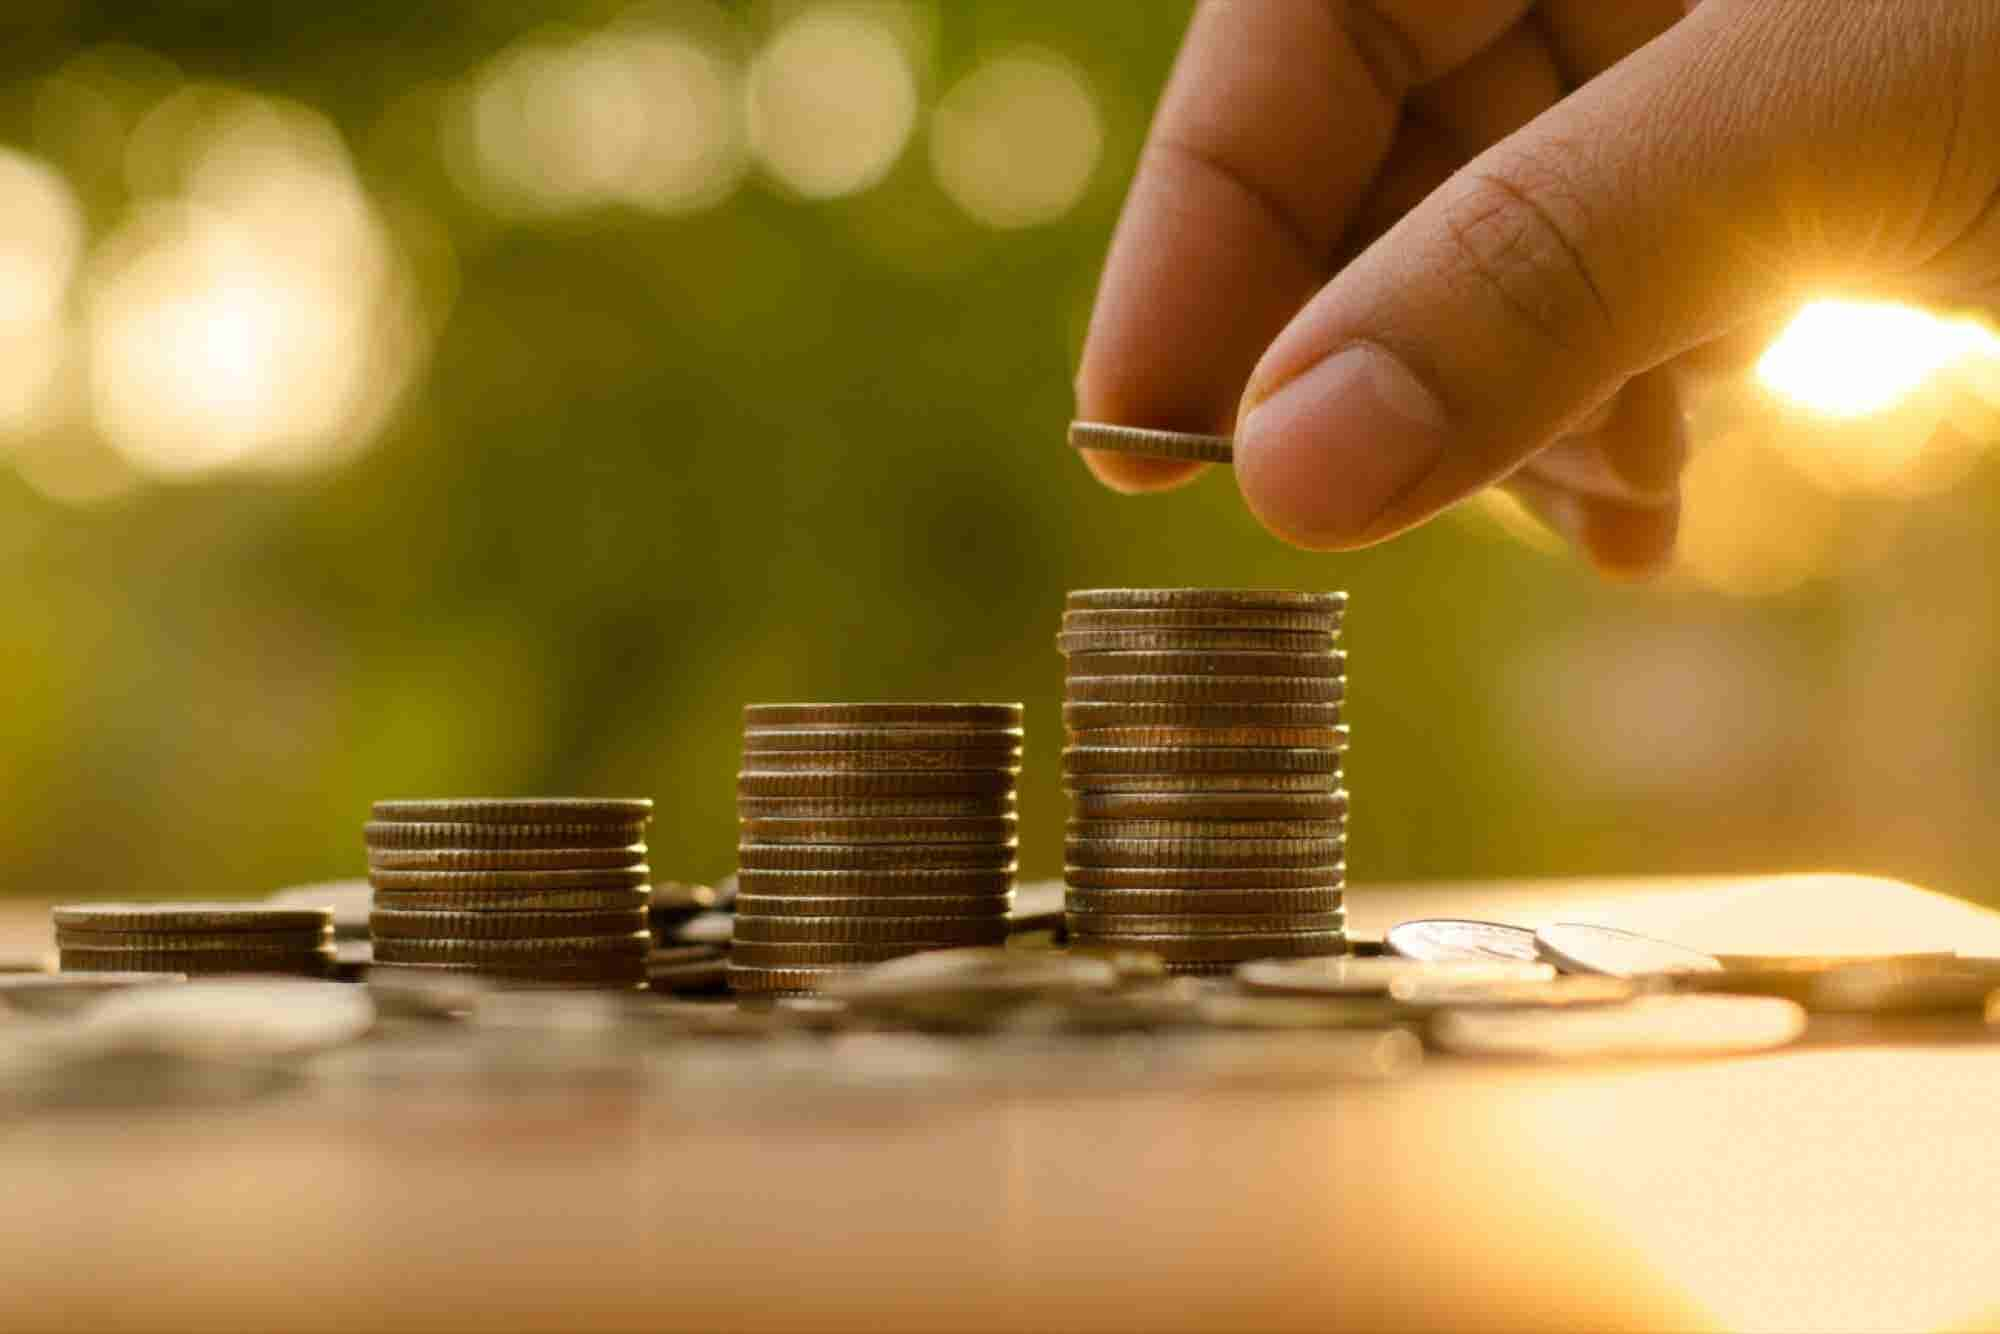 Indian Employees May Get 10% Wealthier in 2019, Study (Infographic)